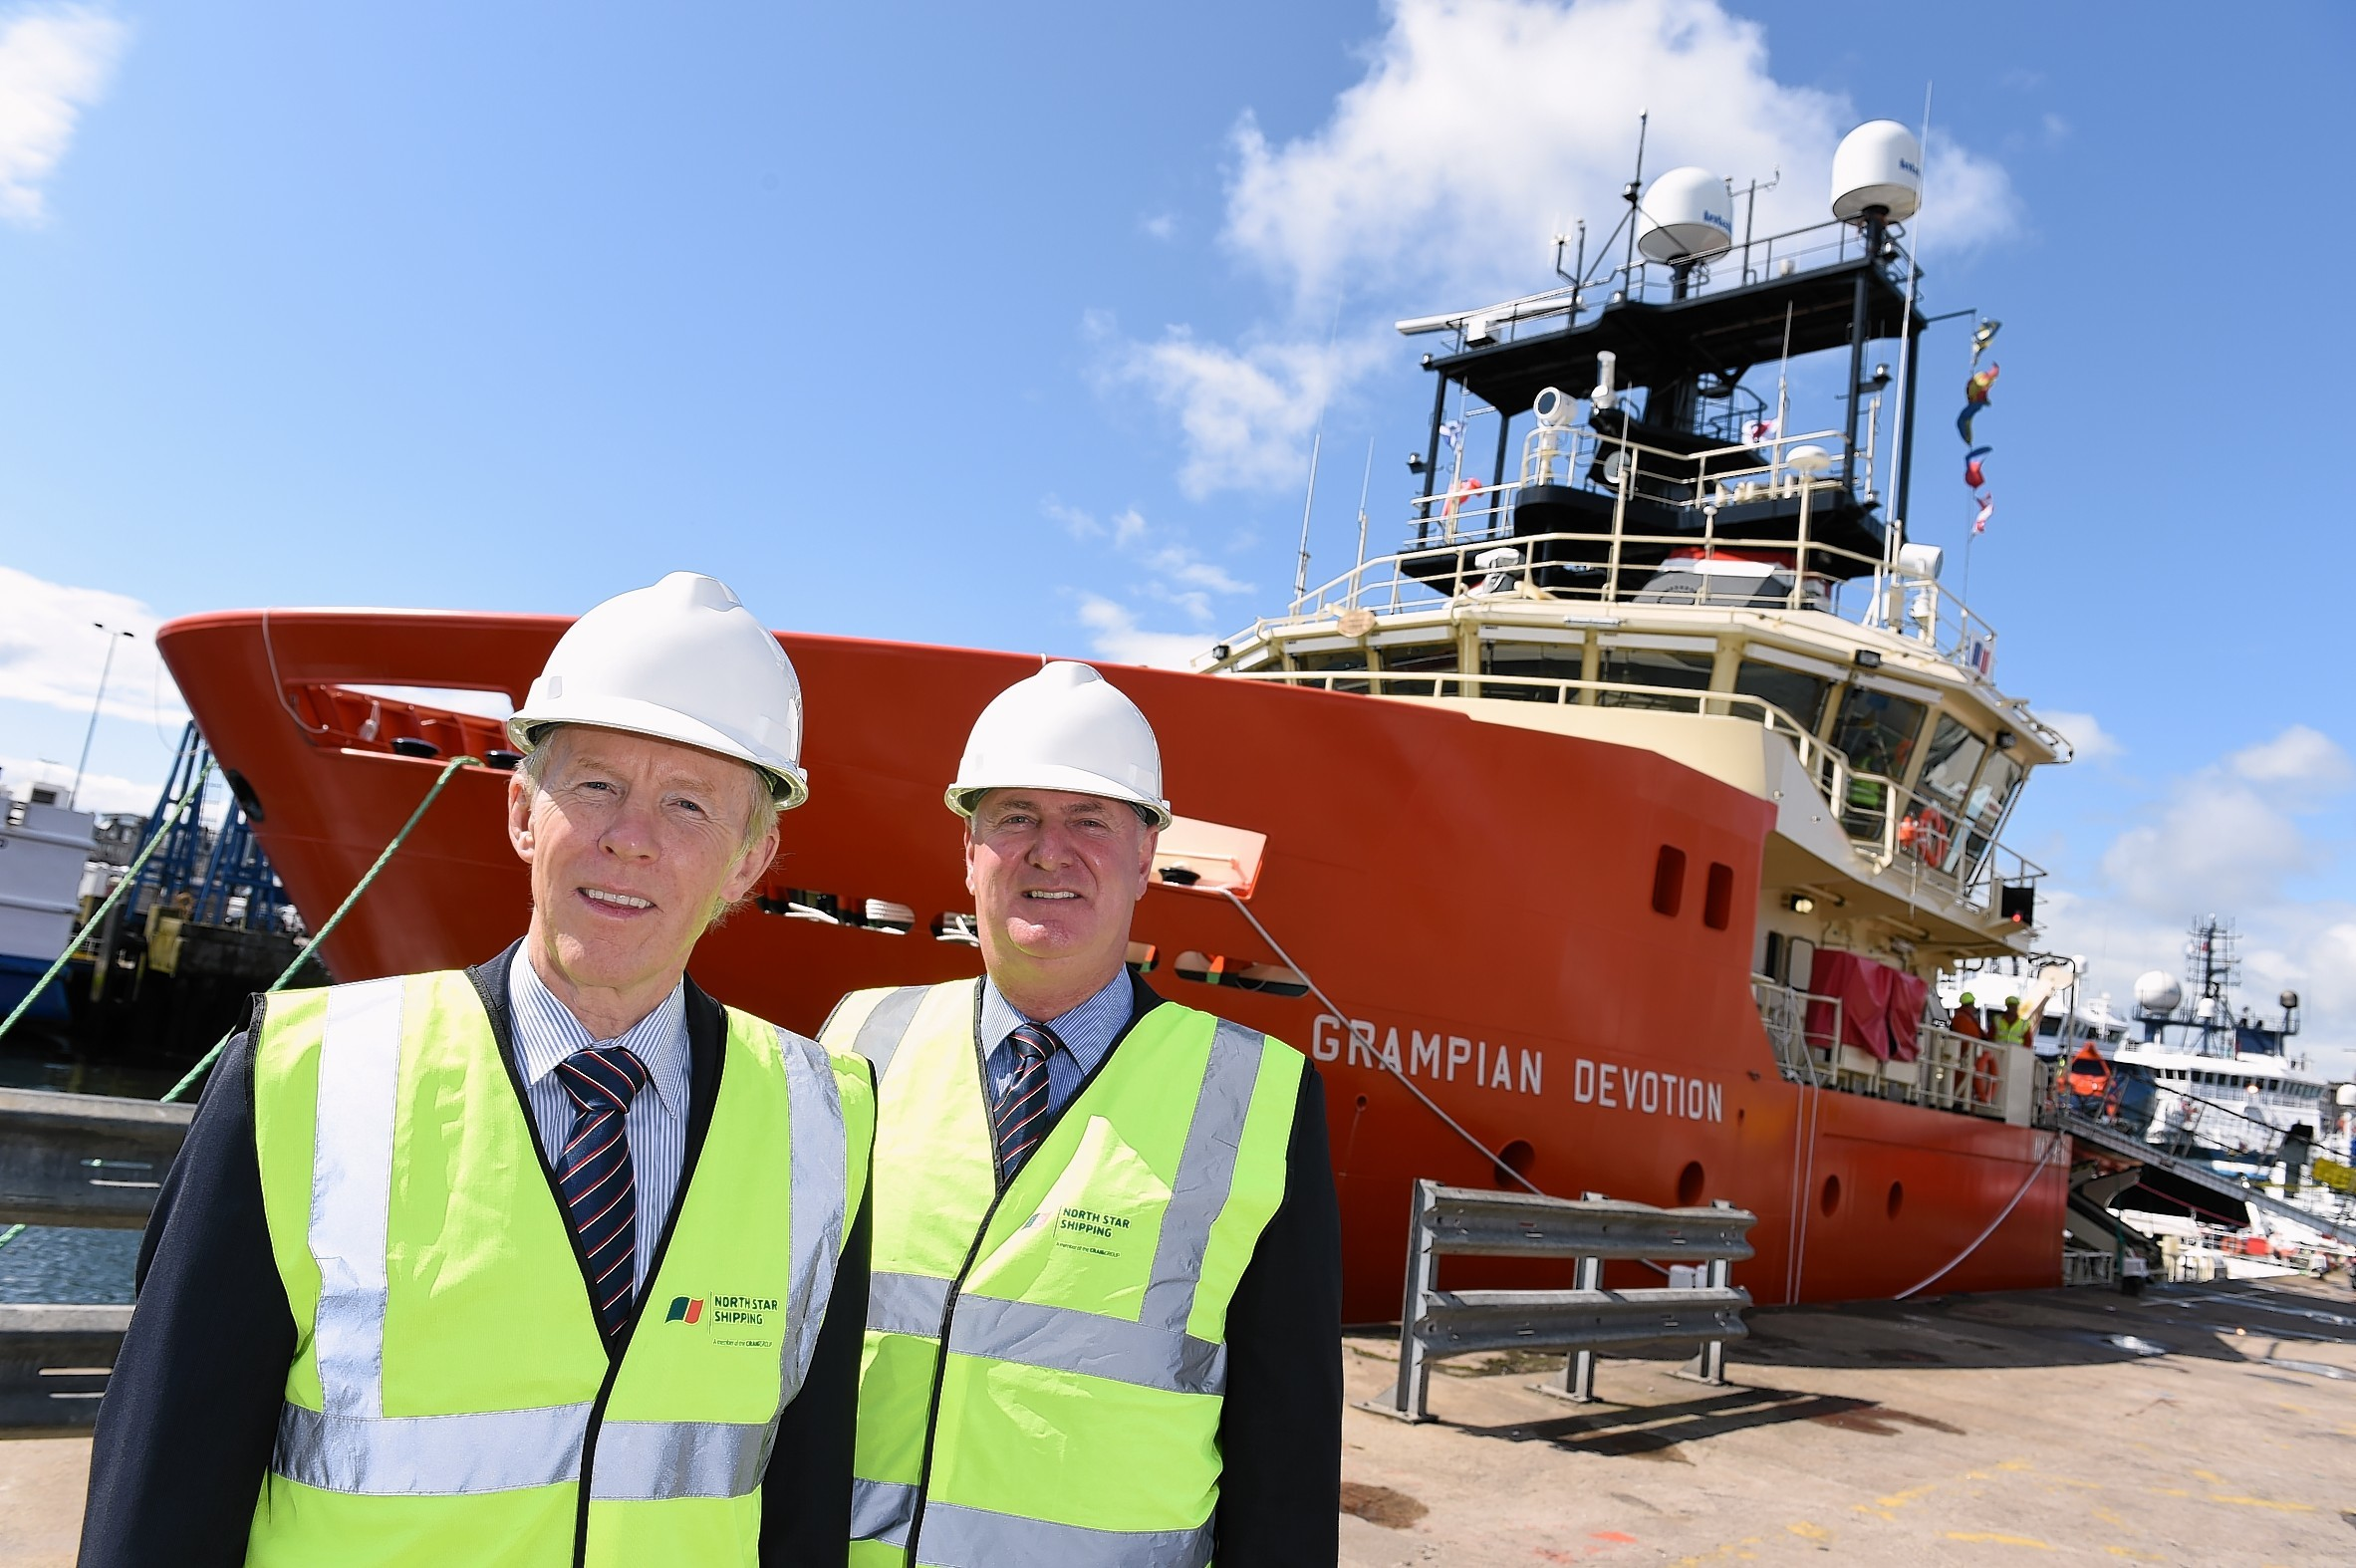 Douglas Craig, Craig Group chairman and managing director, left, and Callum Bruce, managing director of North Star Shipping standing on the quay in front of the Grampian Devotion.